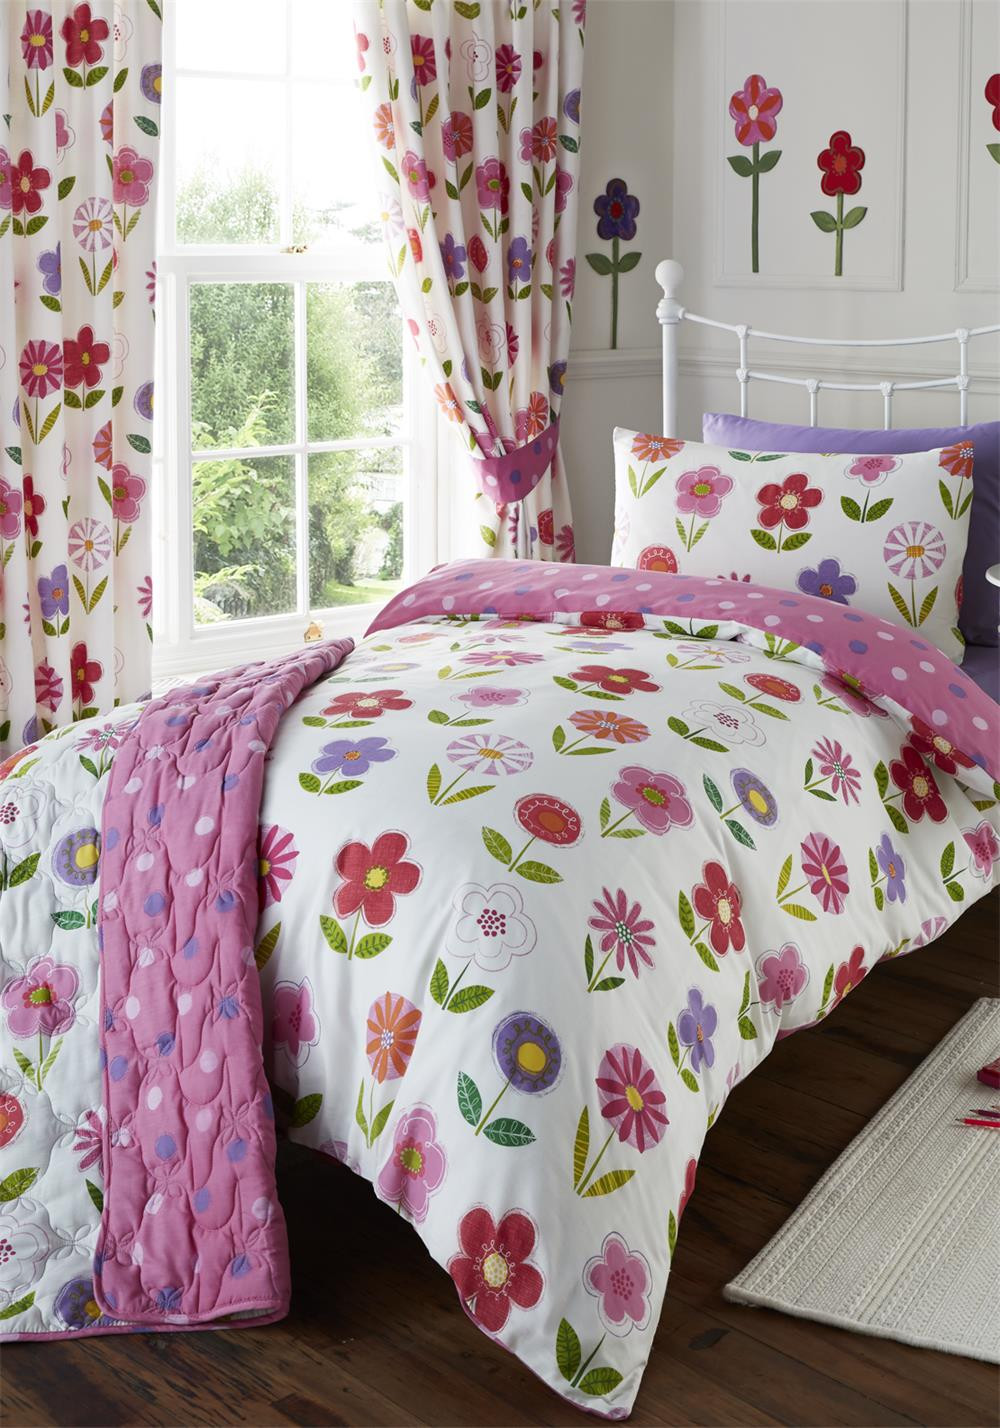 Kids Club Little Flowers Duvet Cover Set, Pink